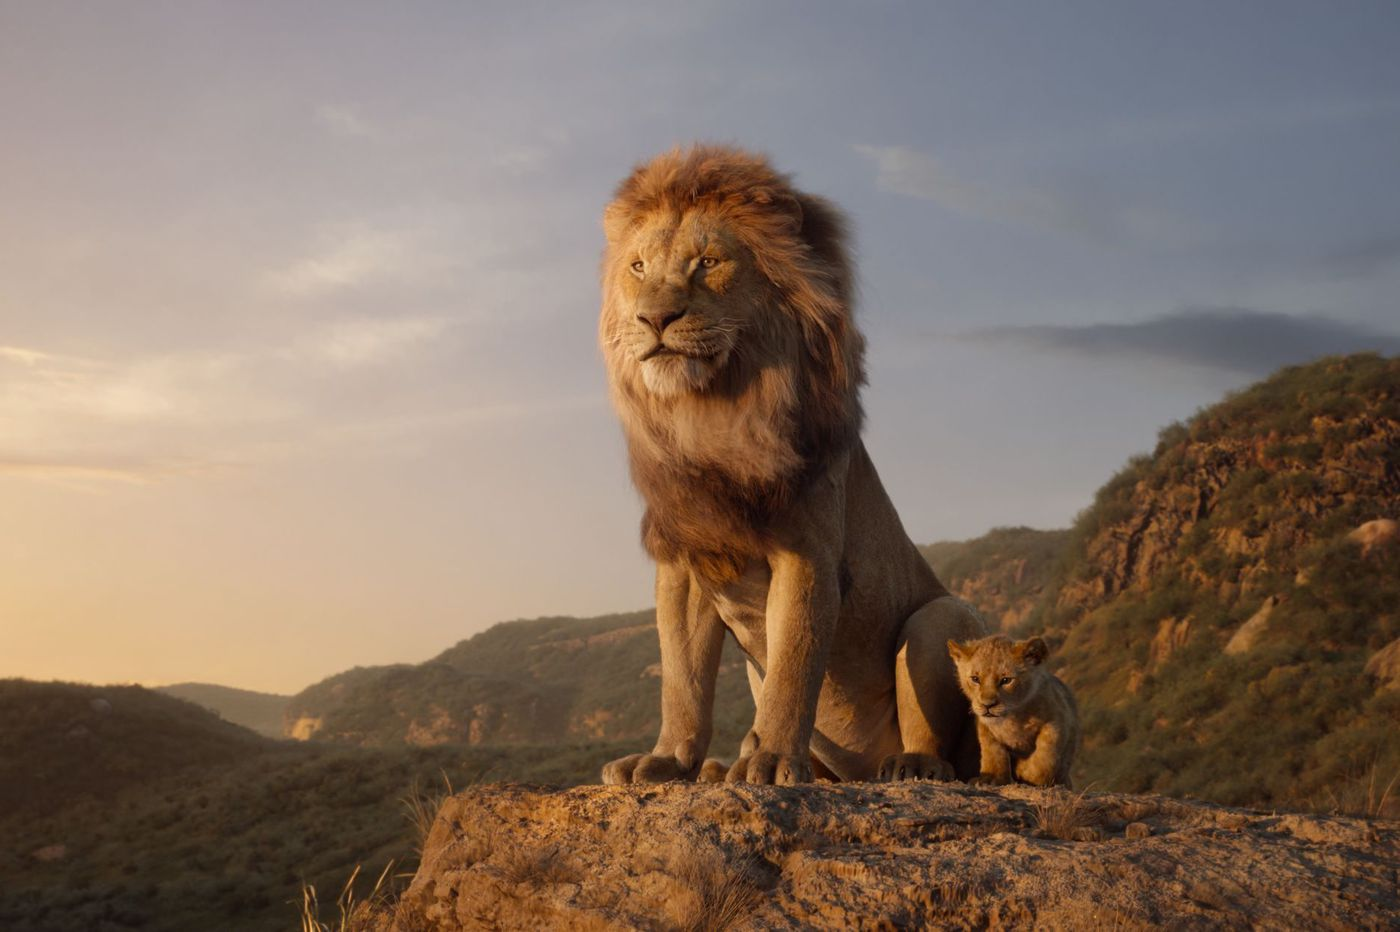 Movie_Review_Lion_King_2019.jpg